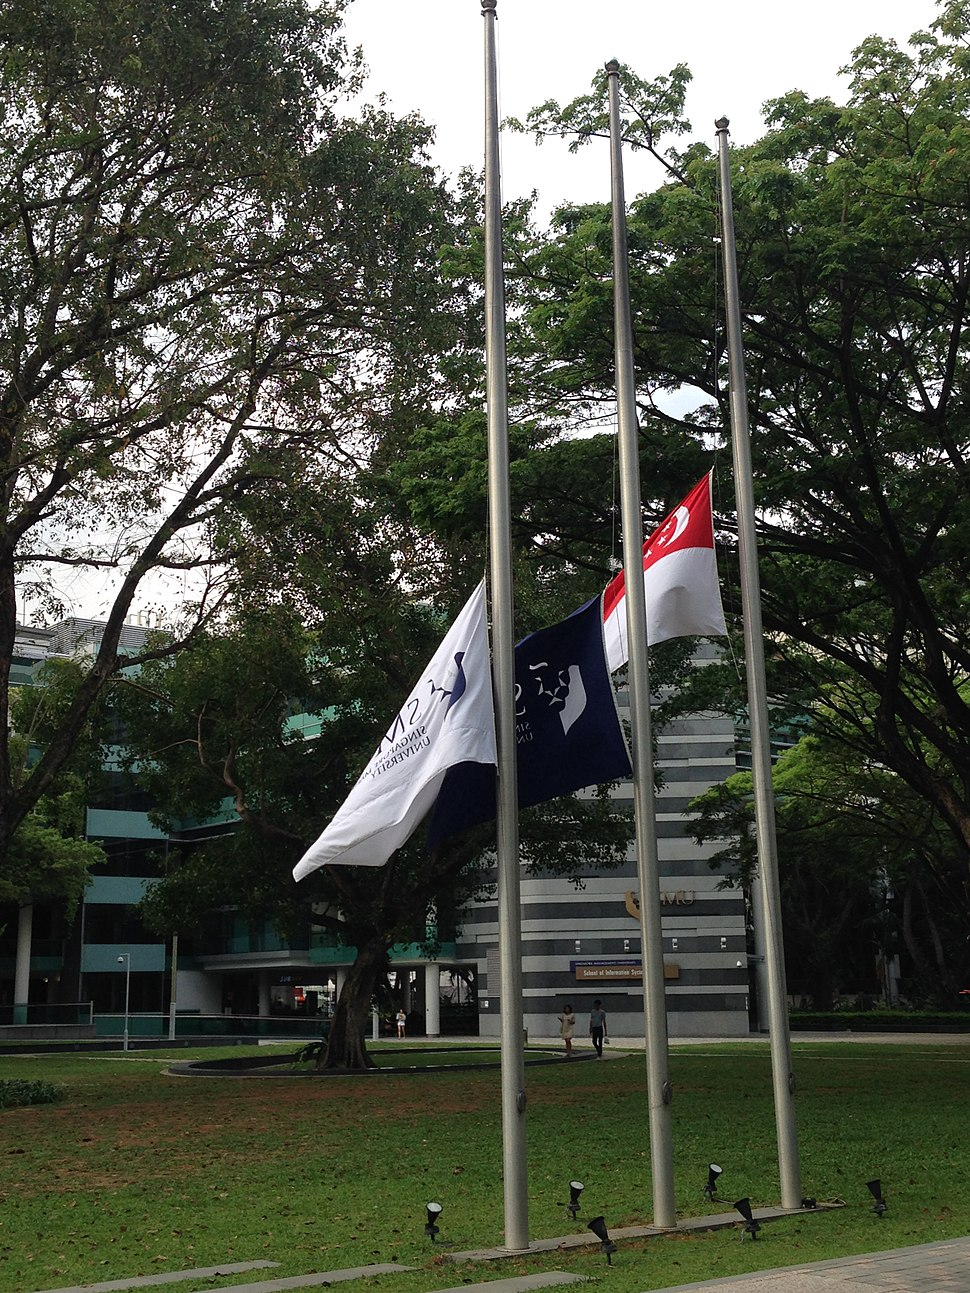 Flags at half staff to mark the death of Lee Kuan Yew, College Green, Singapore Management University - 20150323-01.jpg